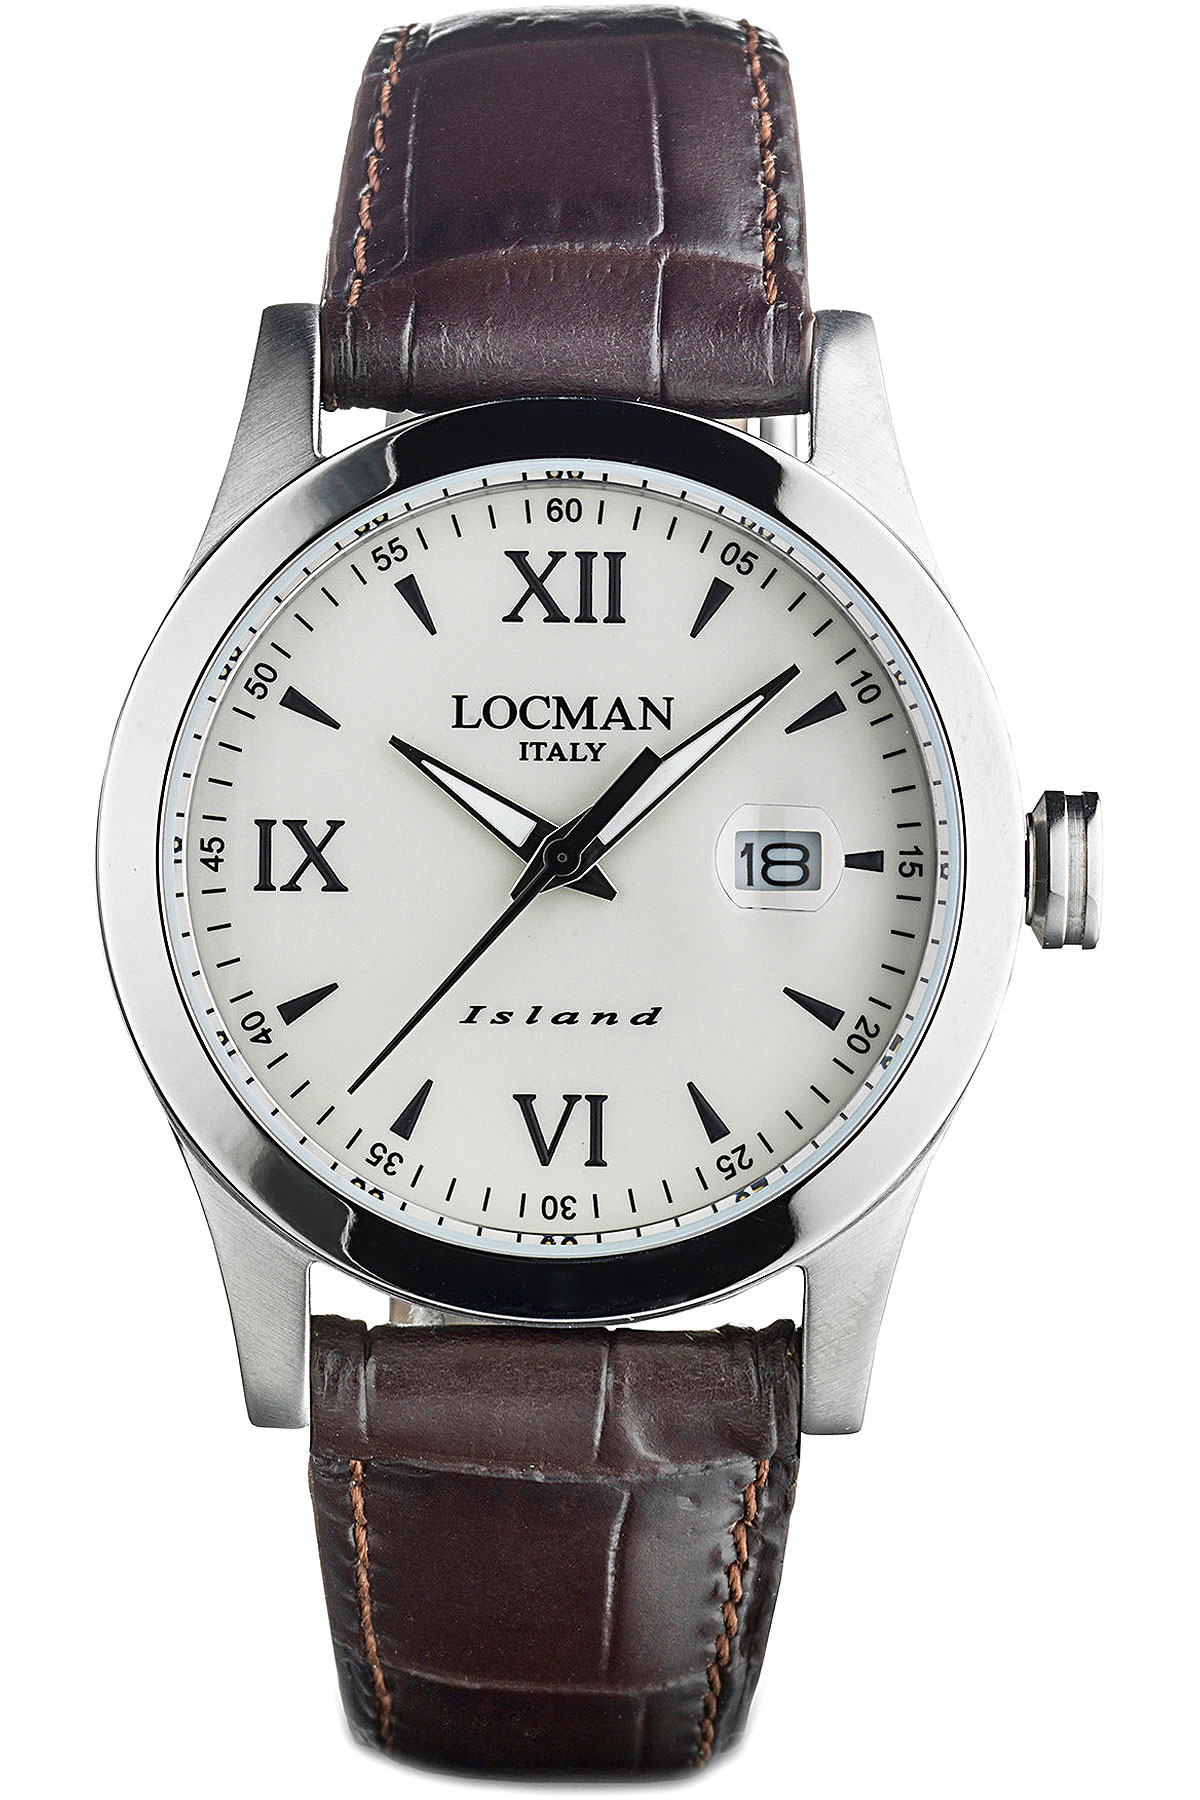 Locman Watch for Men, Brown, Leather, 2019